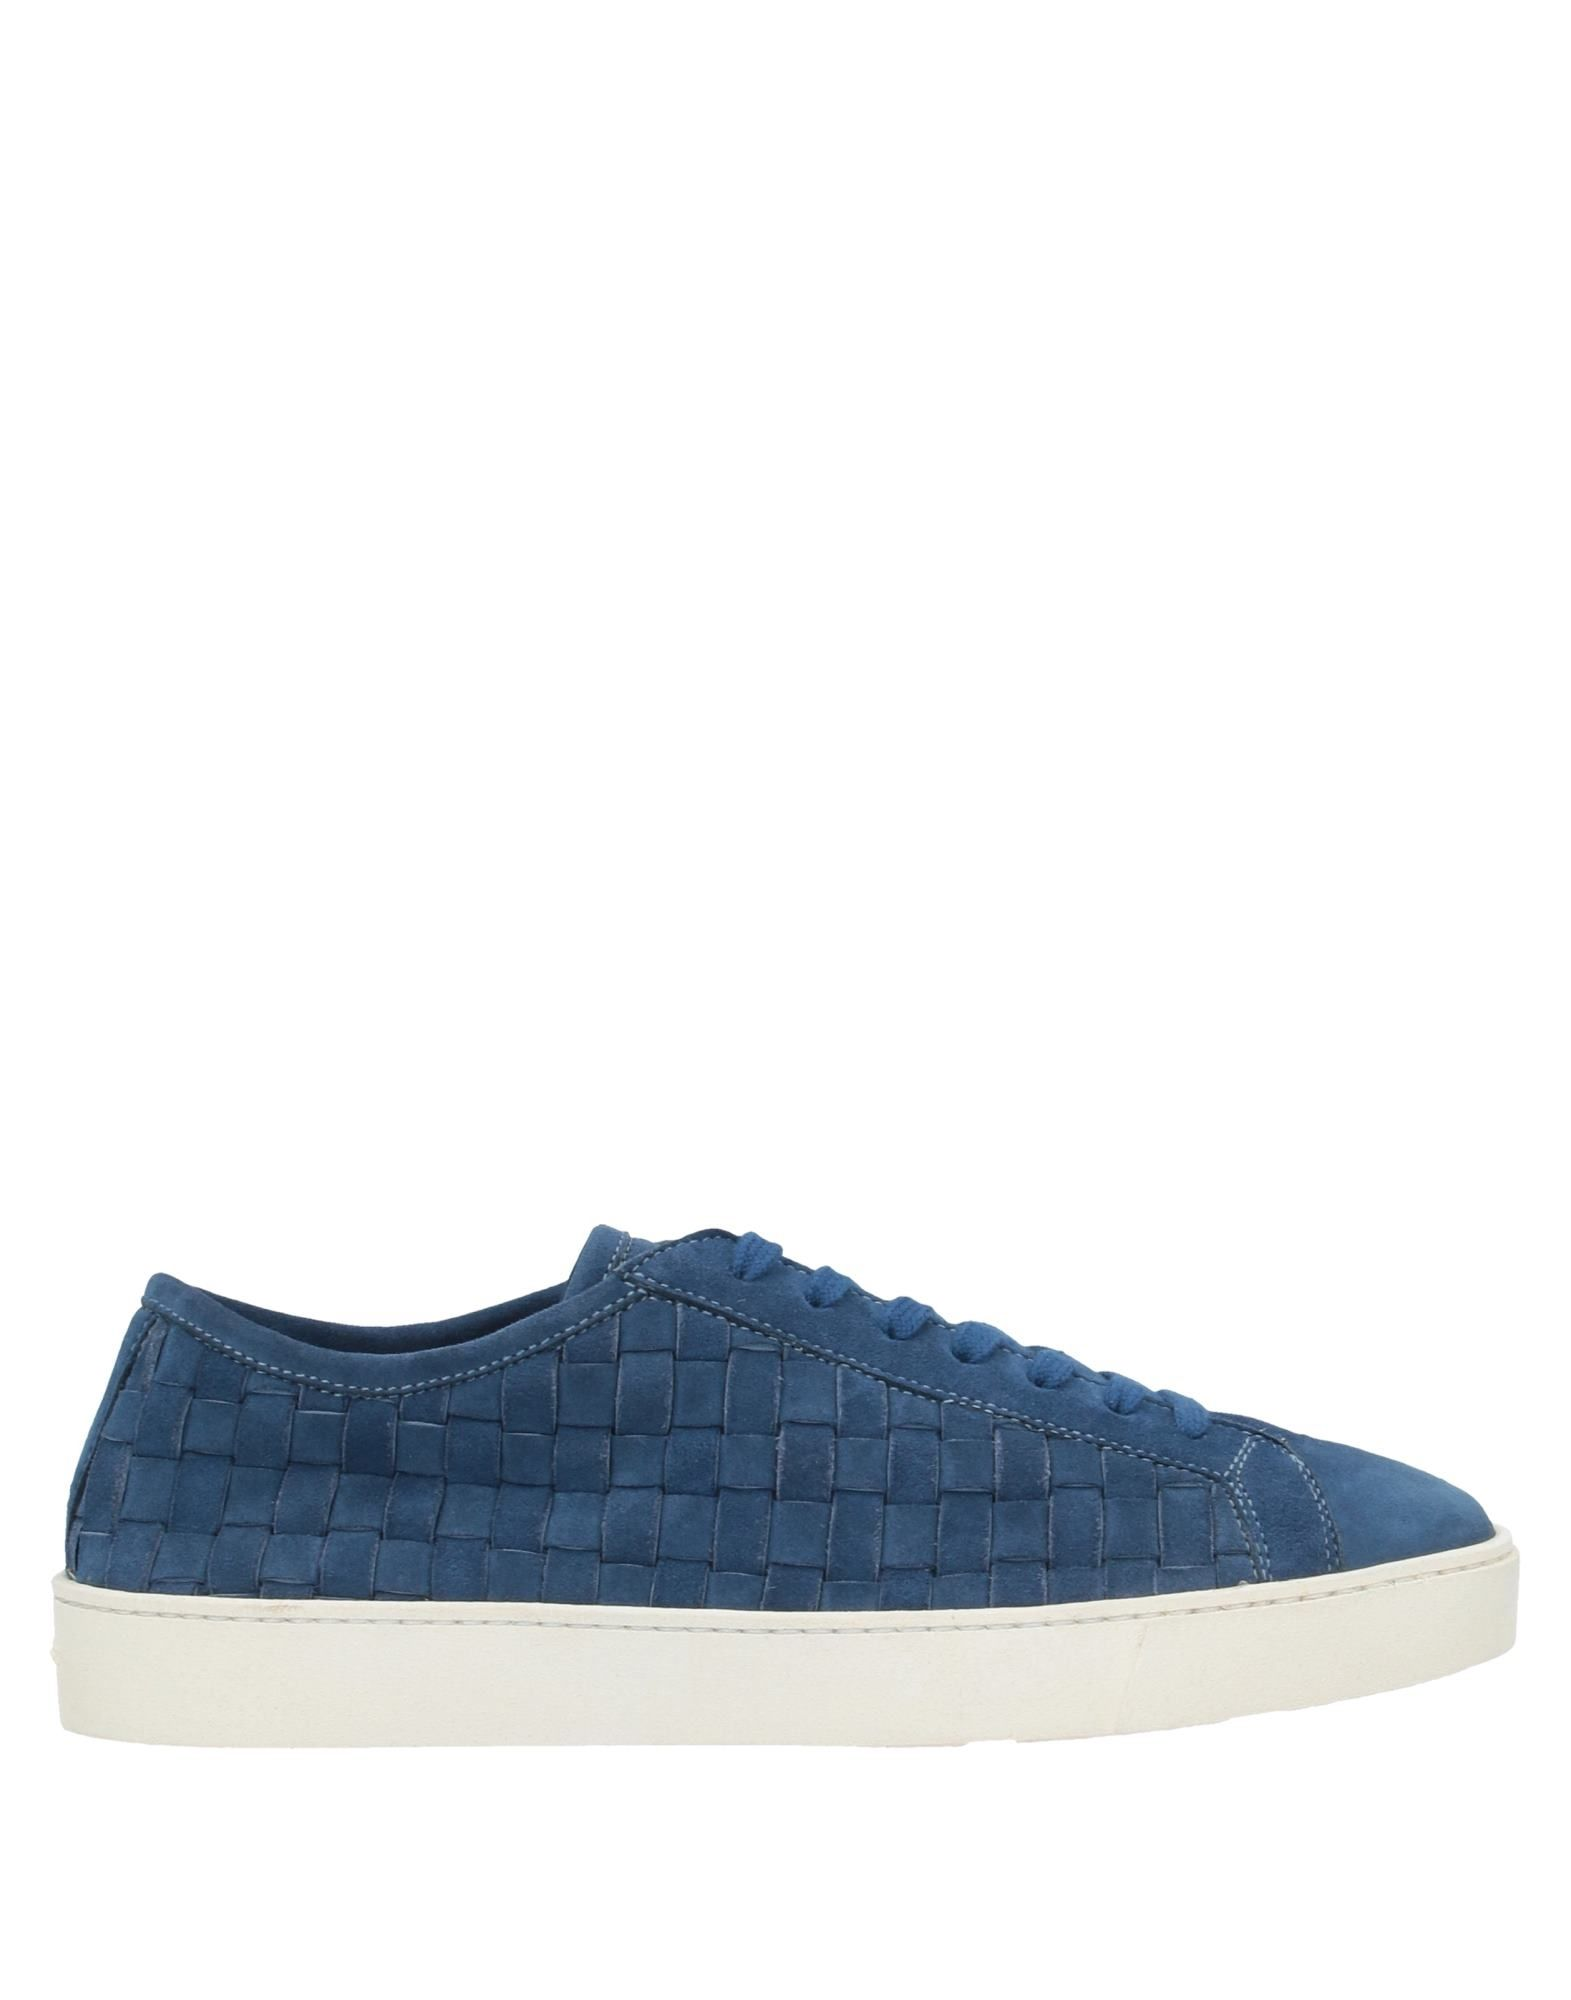 SANTONI Sneakers. leather, suede effect, no appliqués, solid color, laces, round toeline, flat, leather lining, rubber cleated sole, contains non-textile parts of animal origin, large sized. Soft Leather